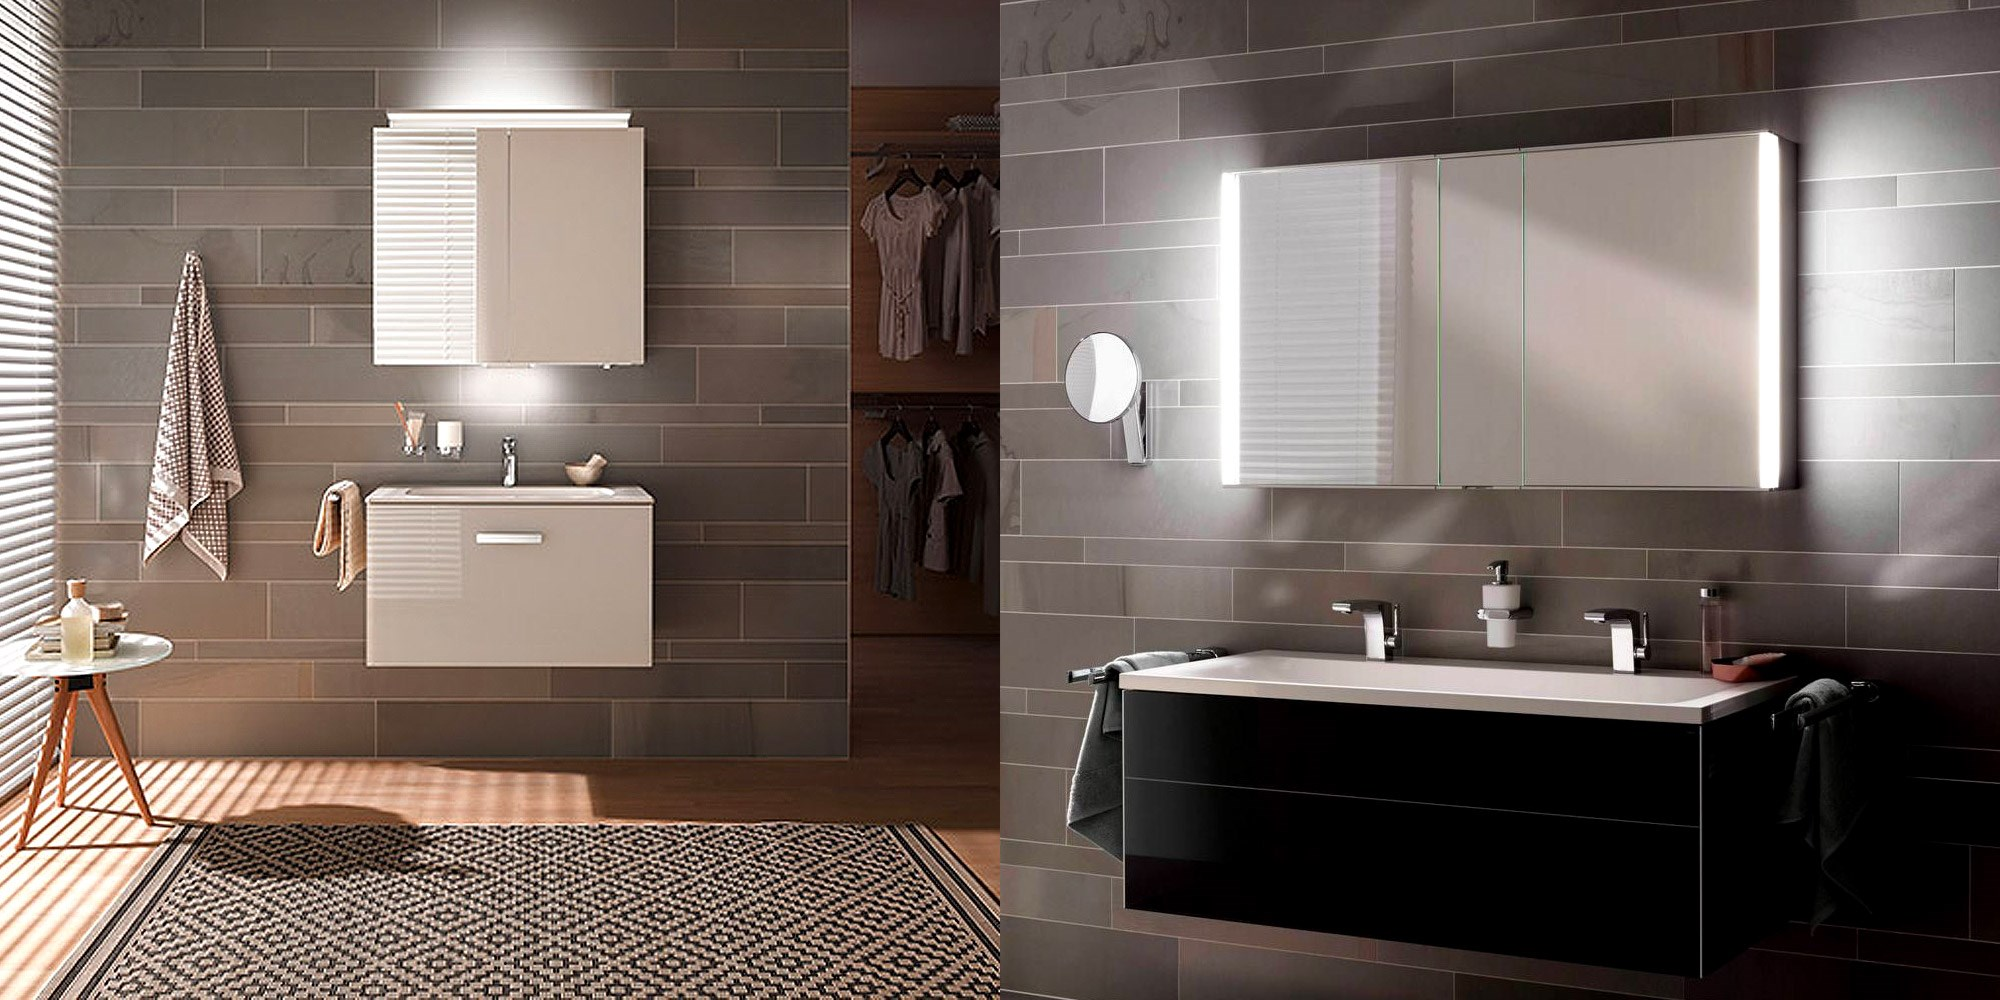 royal l1 cabinet and mirror left royal match illuminated mirror right by keuco bathrooms - Bathroom Cabinets Keuco